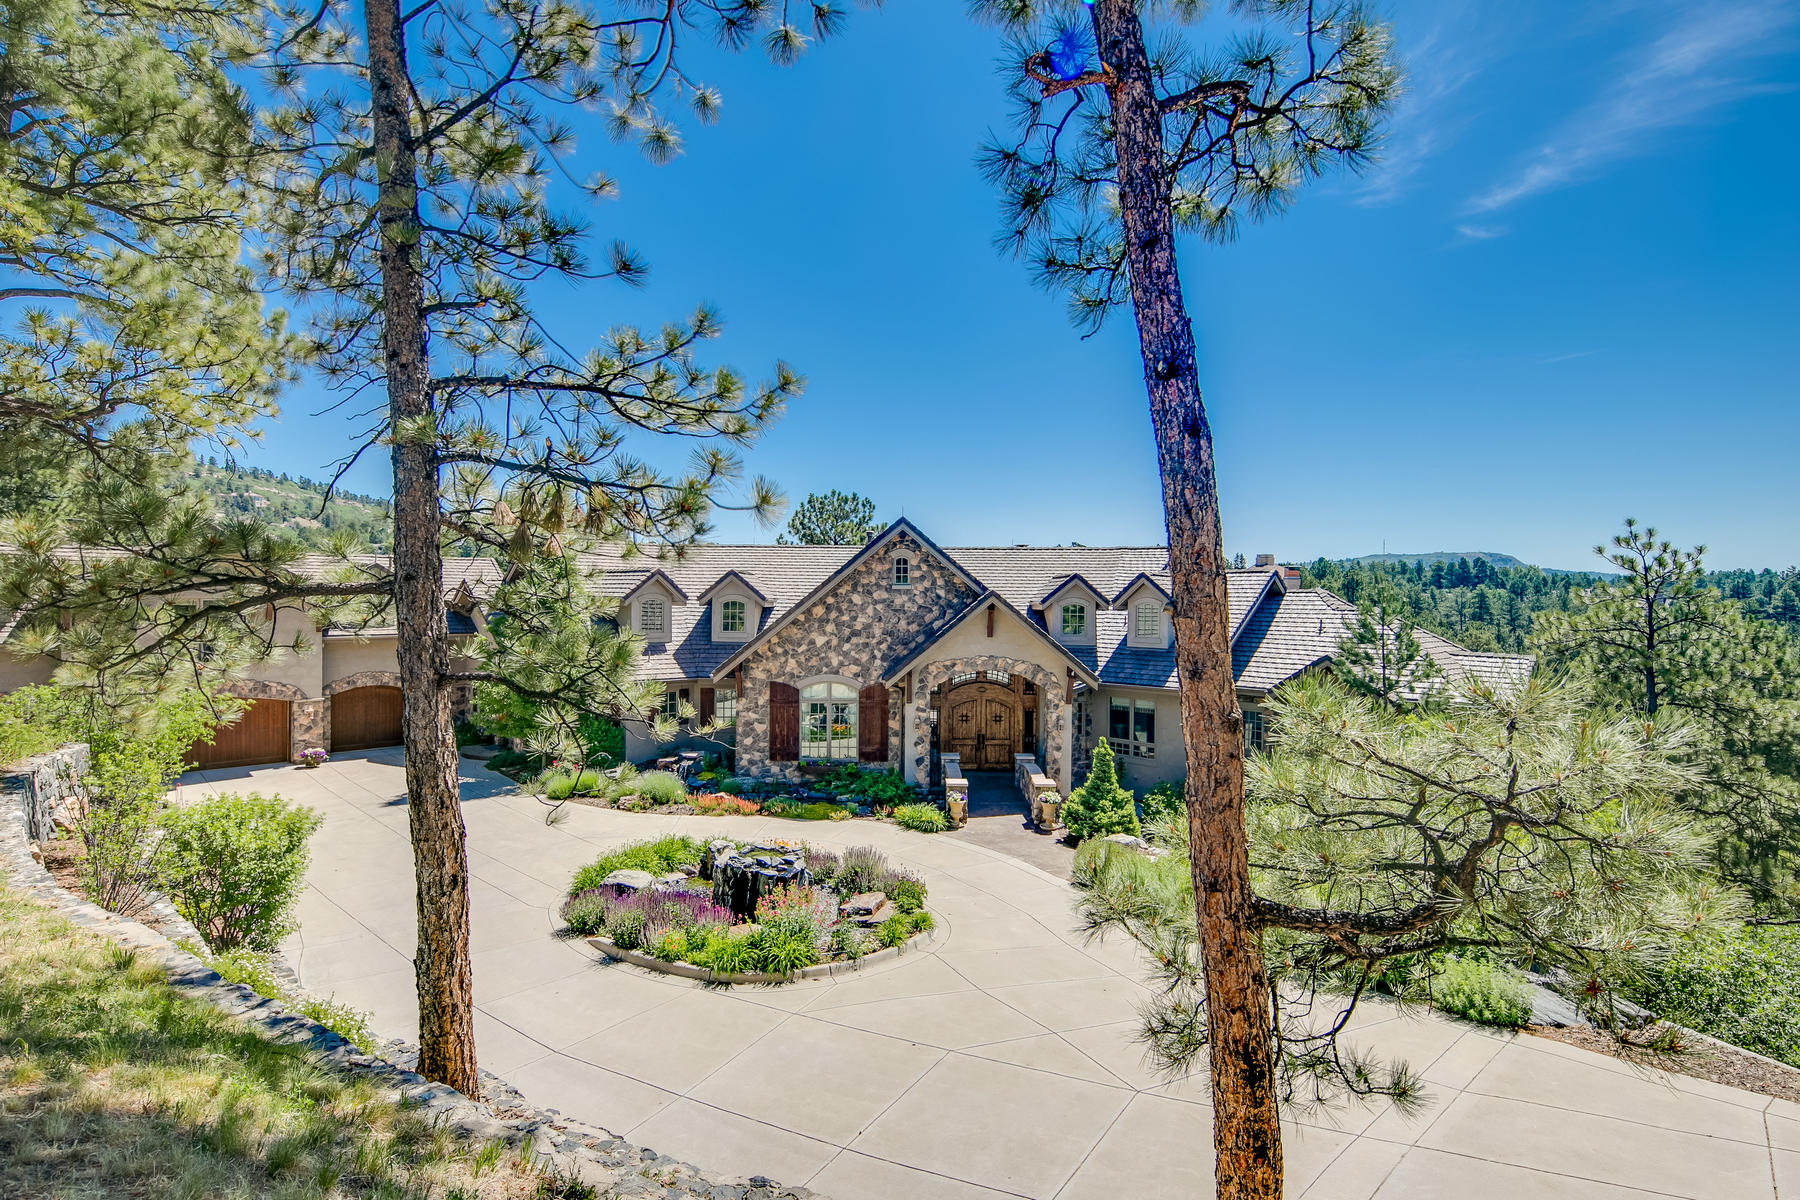 Single Family Home for Active at 102 Coulter Pl 102 Coulter Pl Castle Rock, Colorado 80108 United States